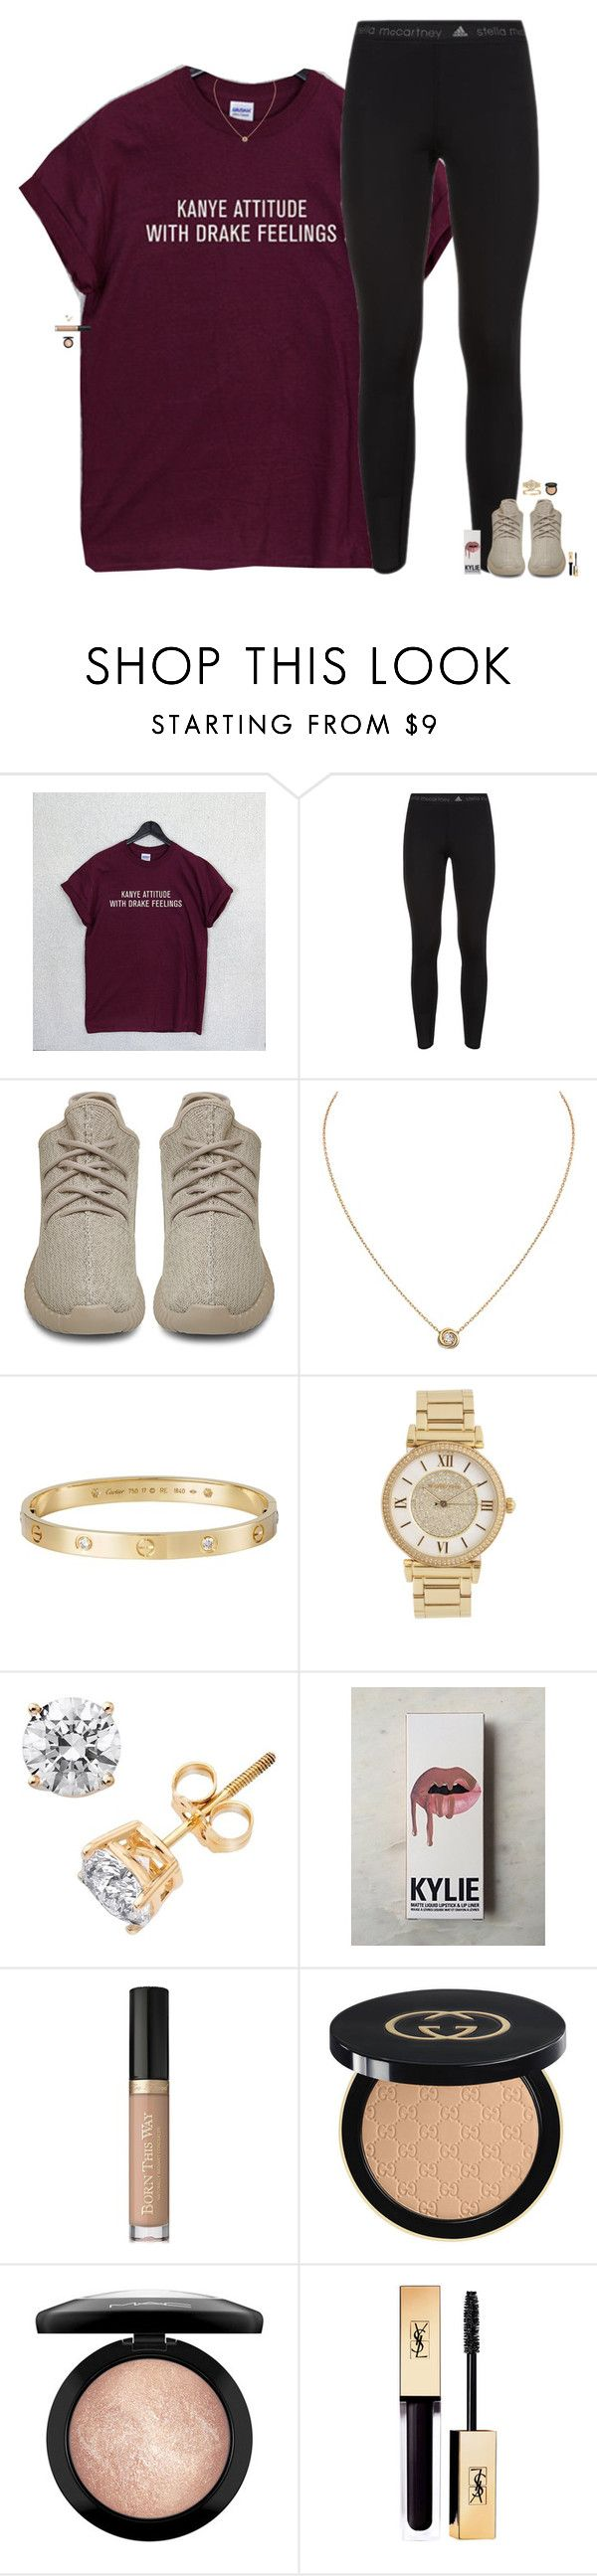 """first football game tomorrow."" by maggie-prep ❤ liked on Polyvore featuring adidas, adidas Originals, Cartier, Michael Kors, Kylie Cosmetics, Too Faced Cosmetics, Gucci, MAC Cosmetics and maggiesbestsets"